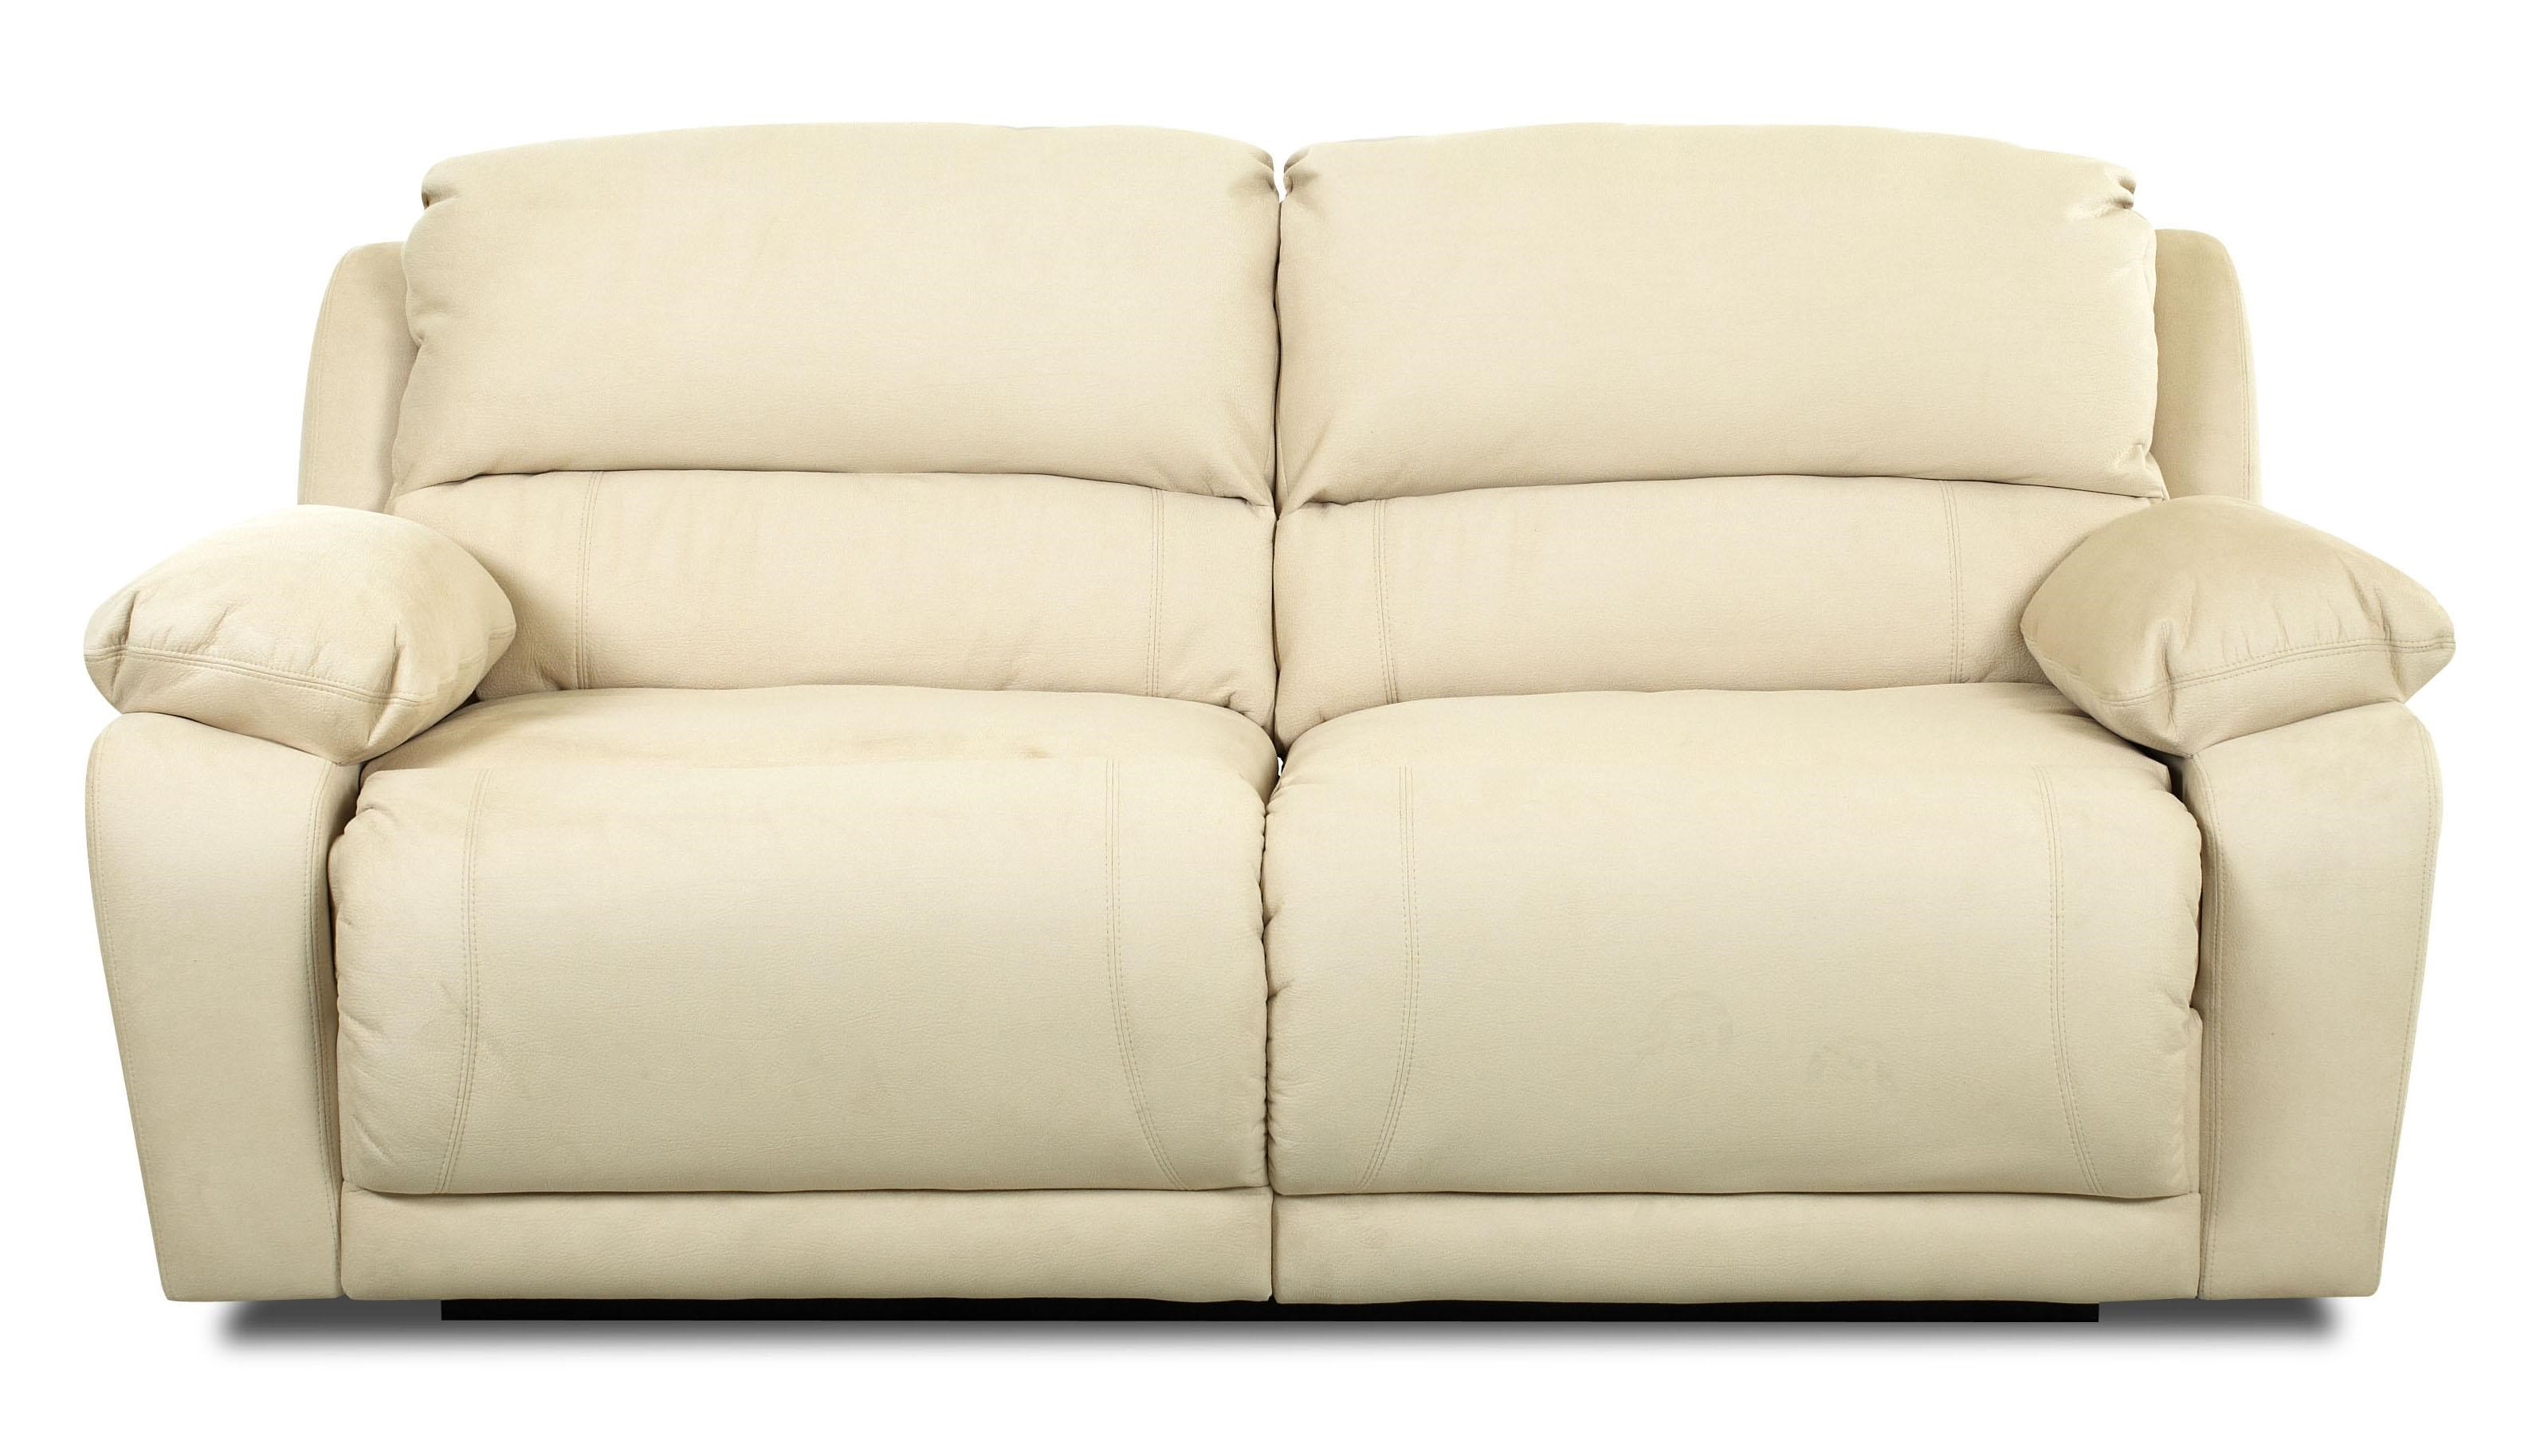 Klaussner Charmed Power Double Reclining Sofa EFO